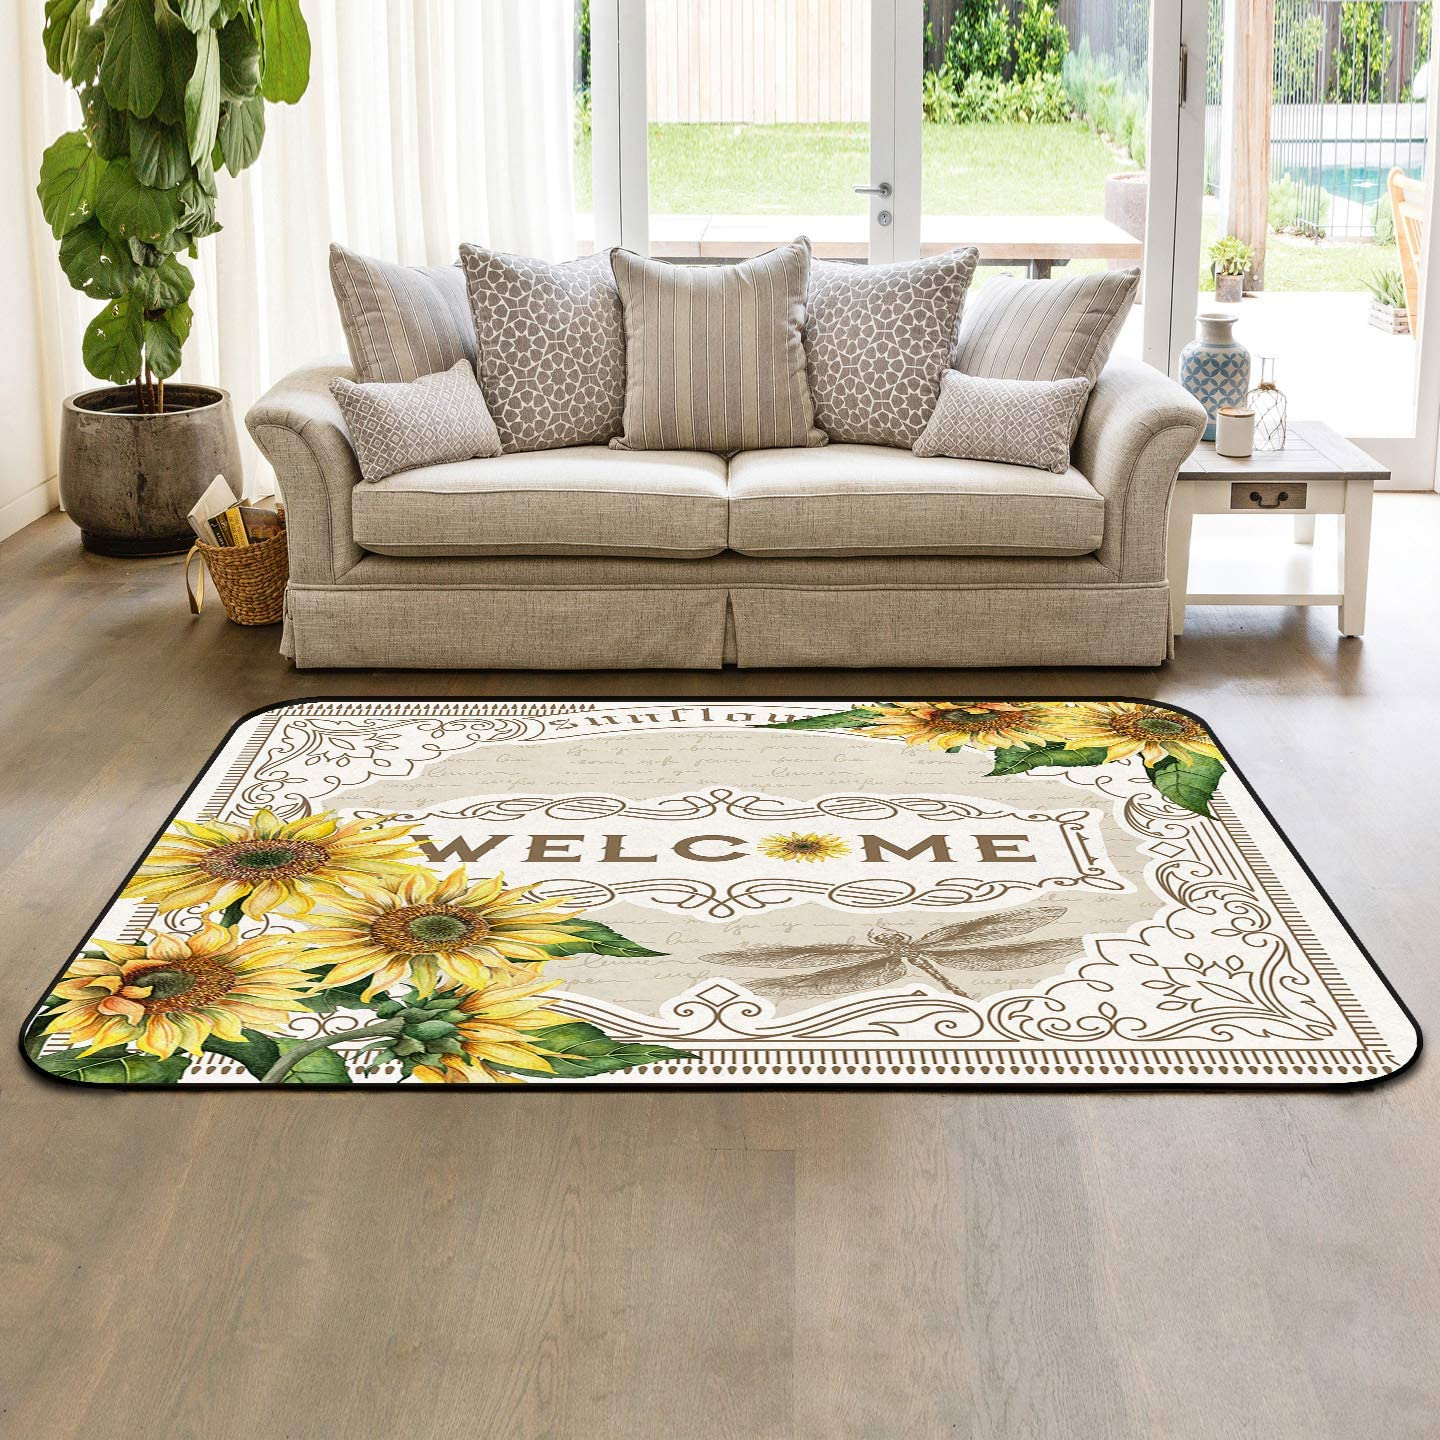 Soft Area Rugs supreme for Bedroom Sunflower 35% OFF Washable Bees Rug Carp Park